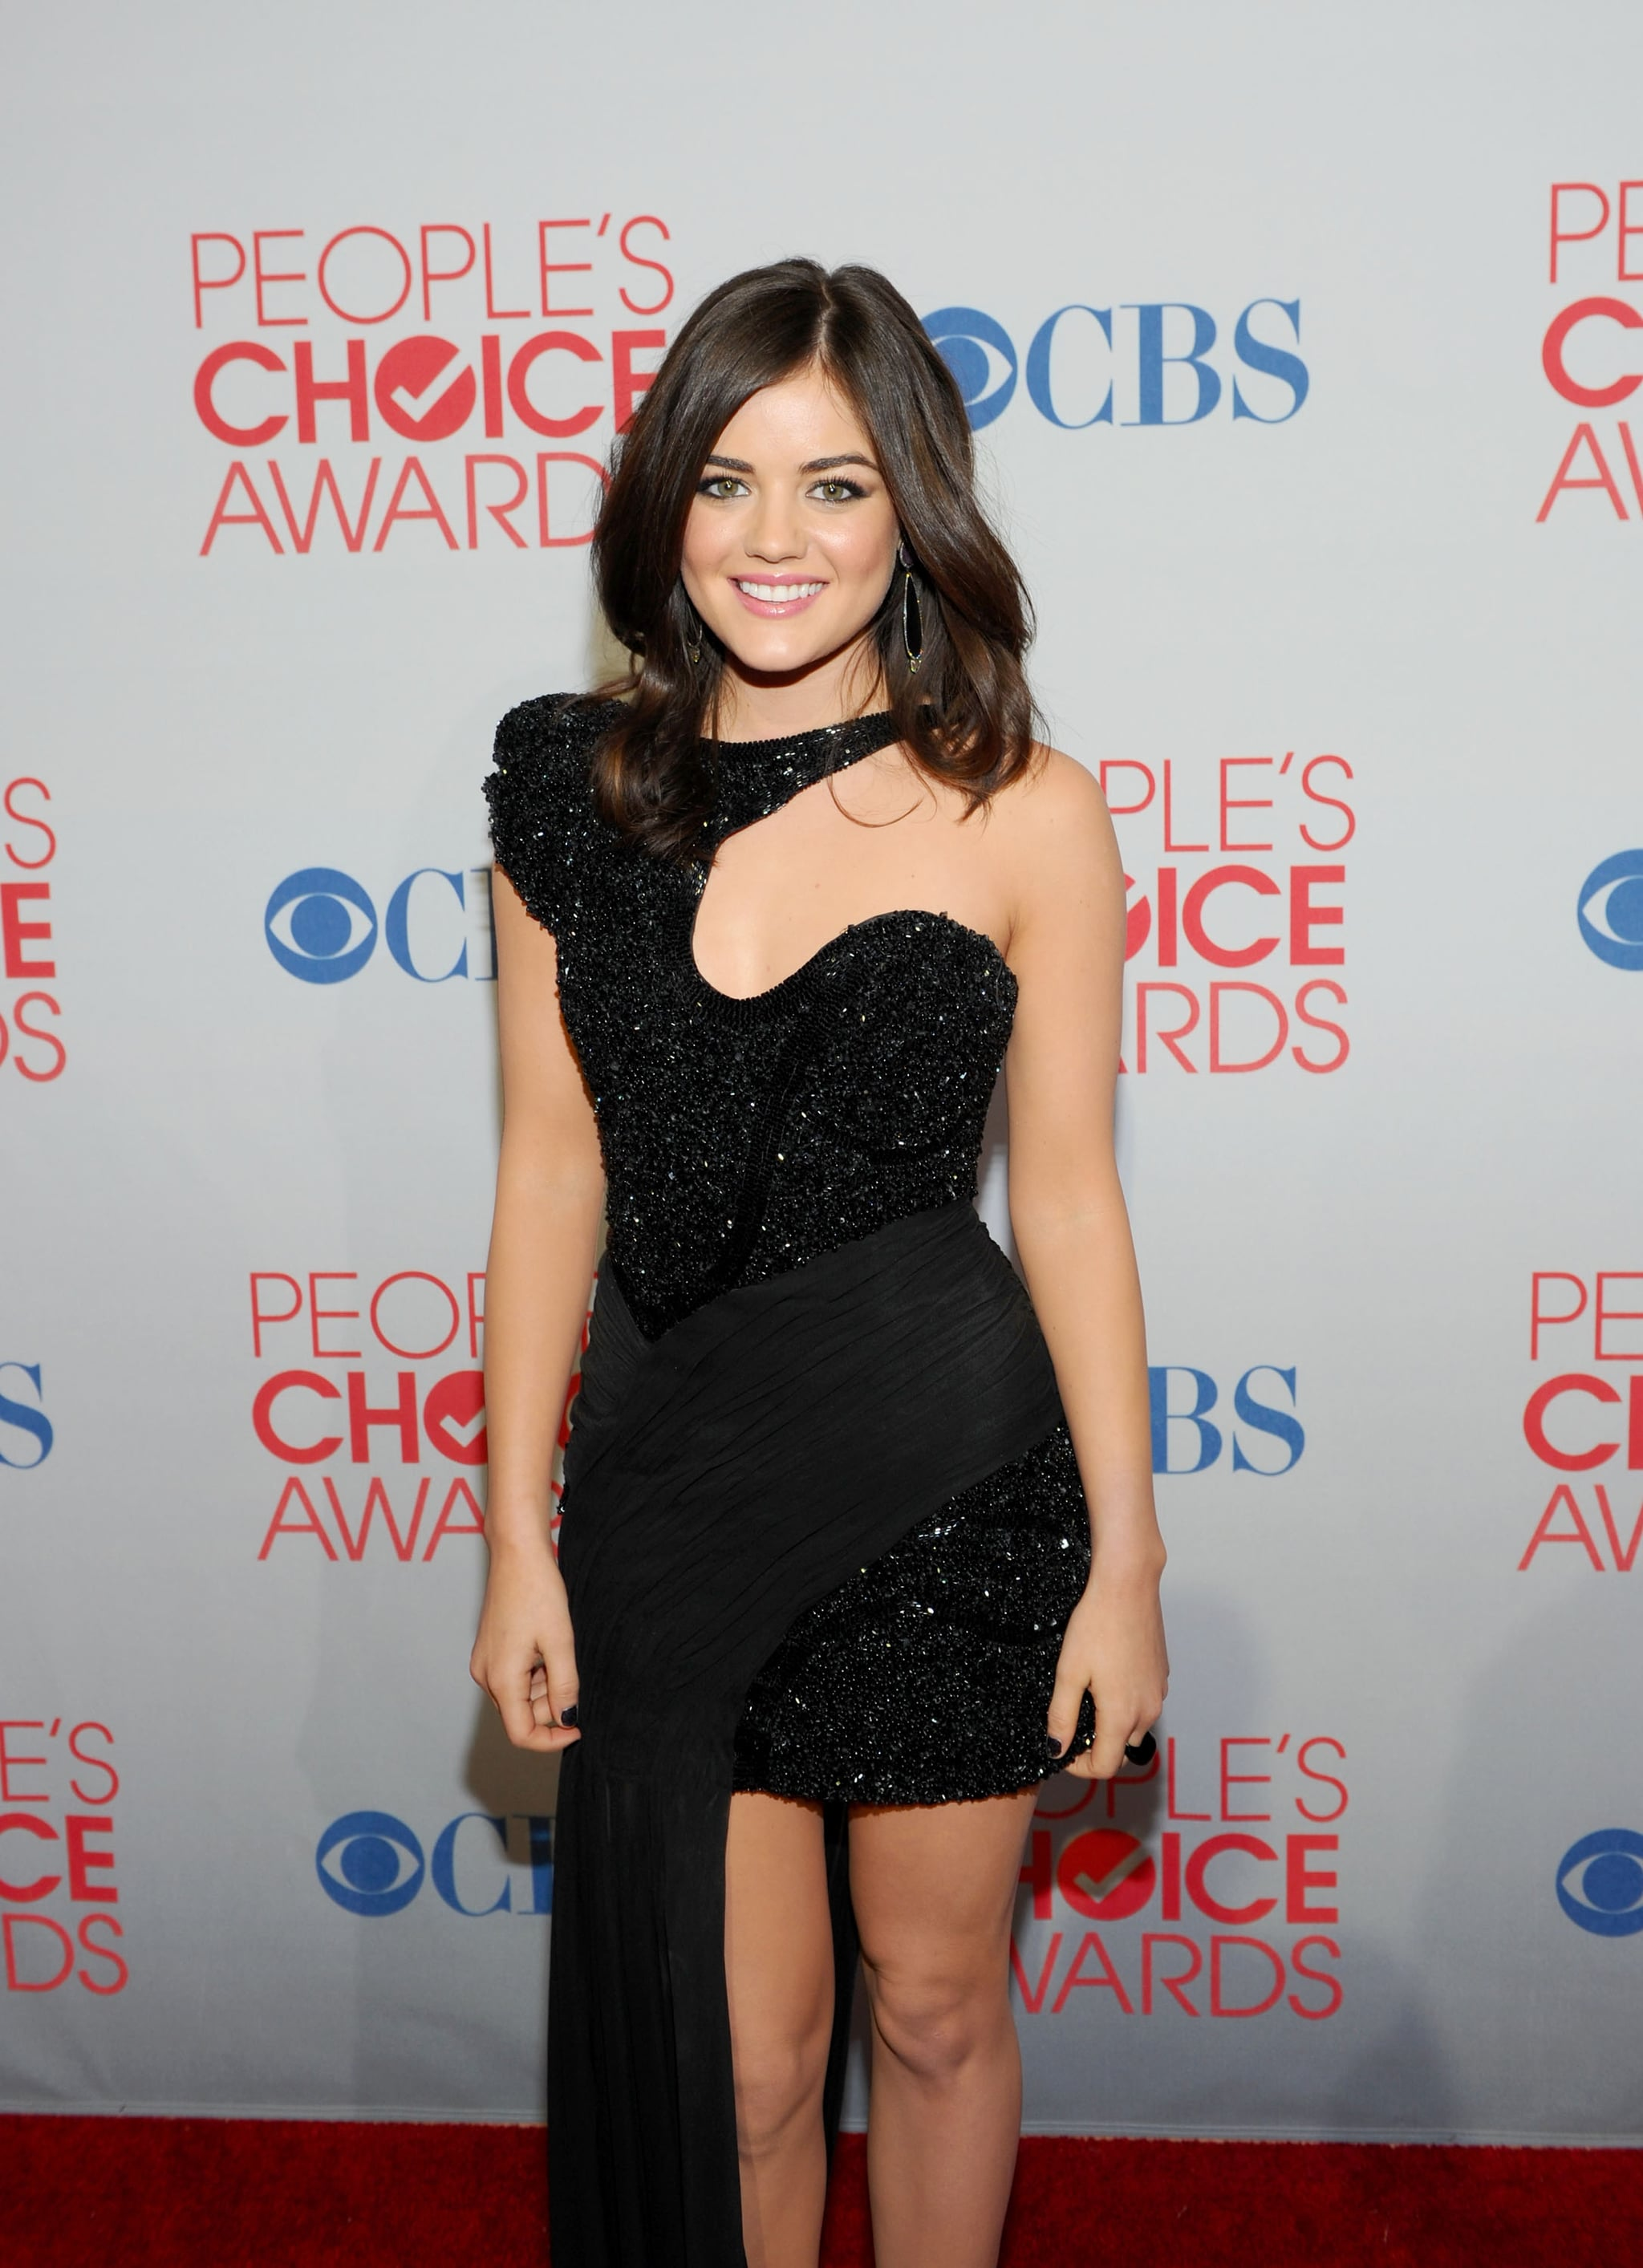 Lucy Hale's cutout dress at the People's Choice Awards.